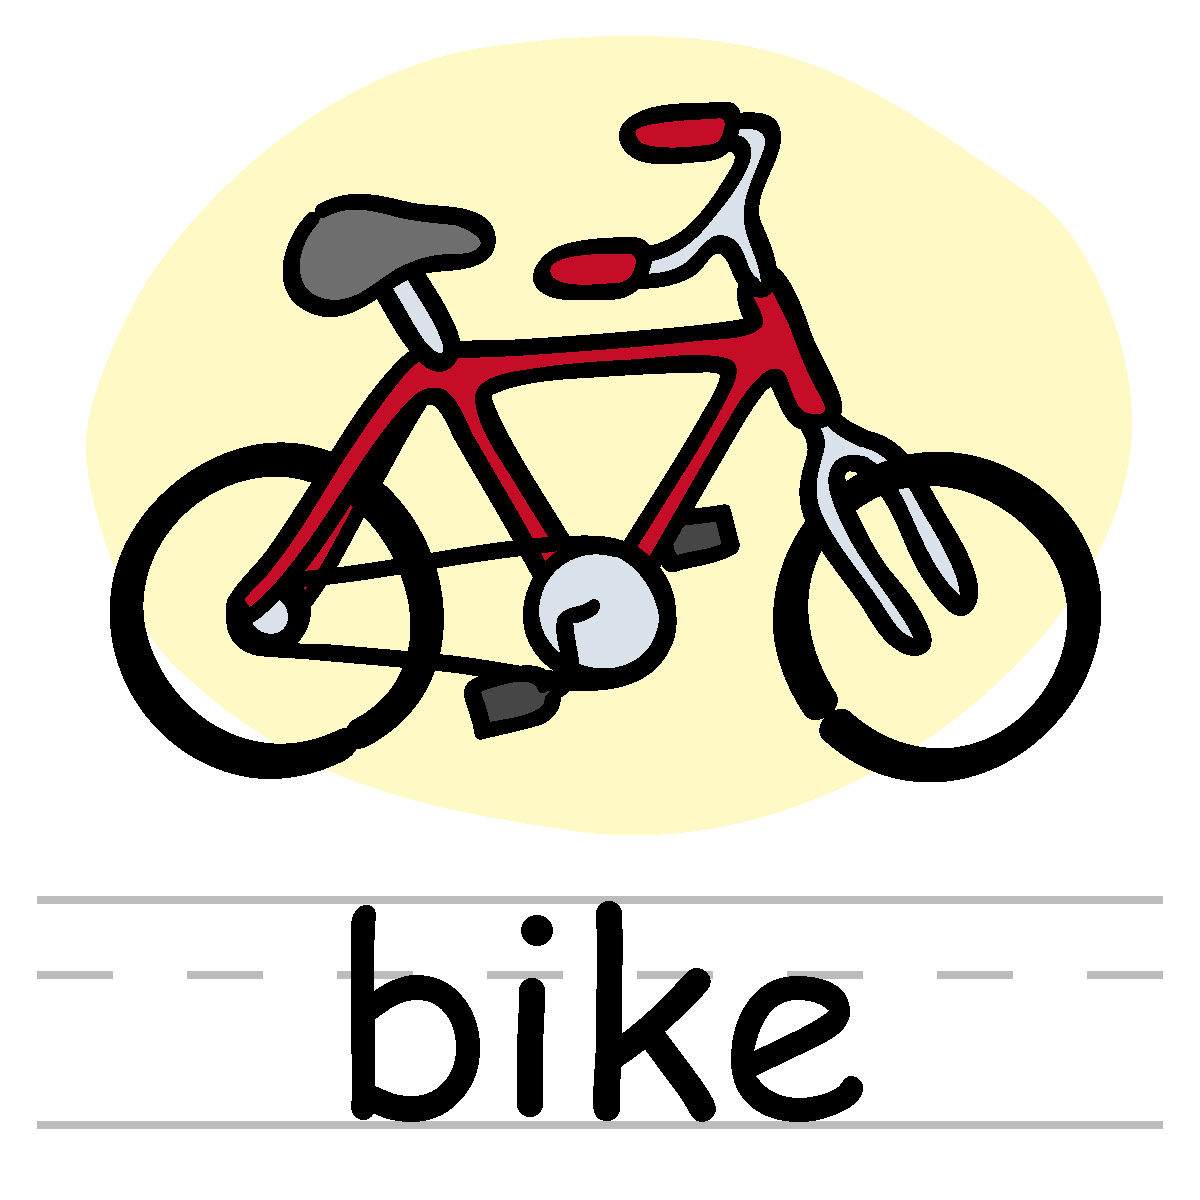 Bicycle cliparting com . Clipart bike simple